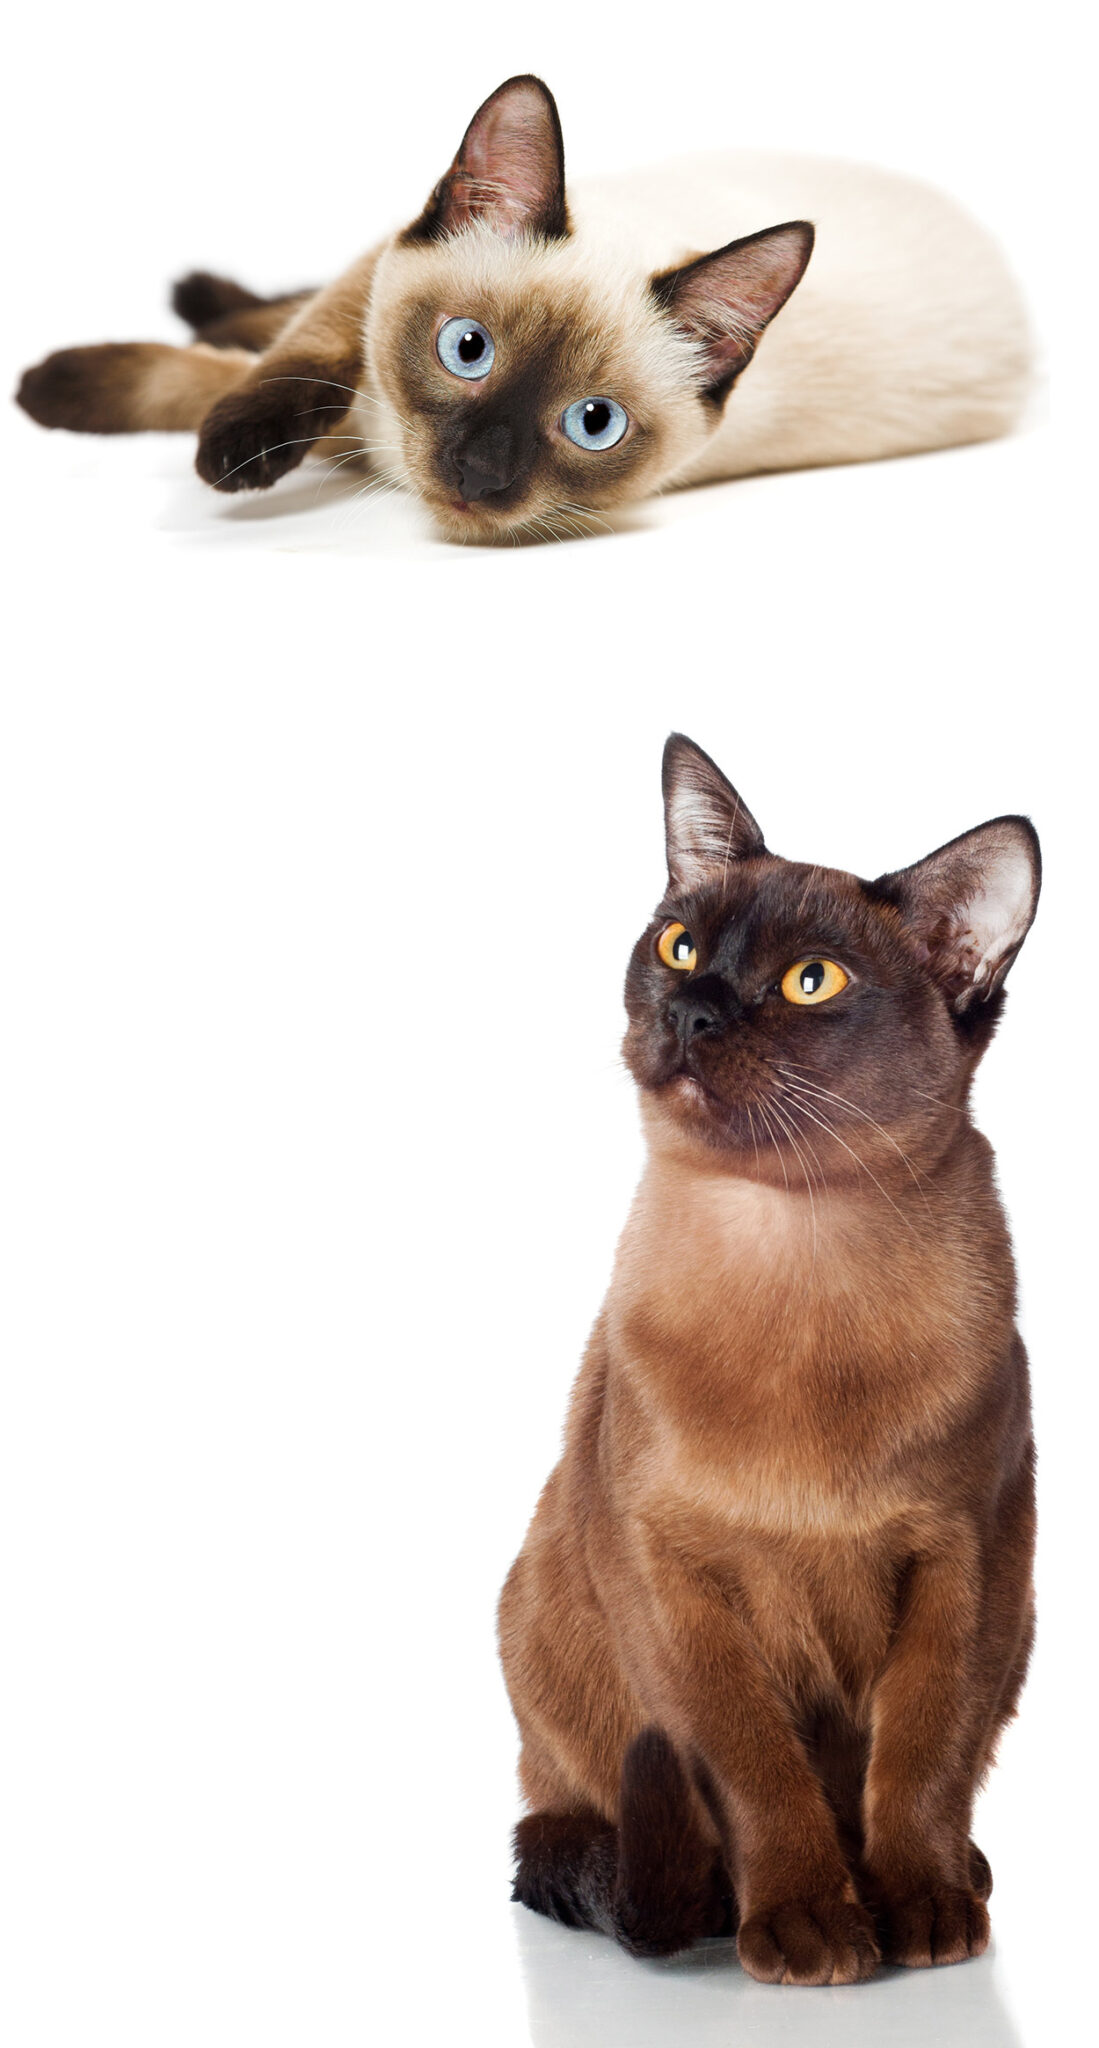 Burmese vs Siamese - The Happy Cat Site Helps You Choose